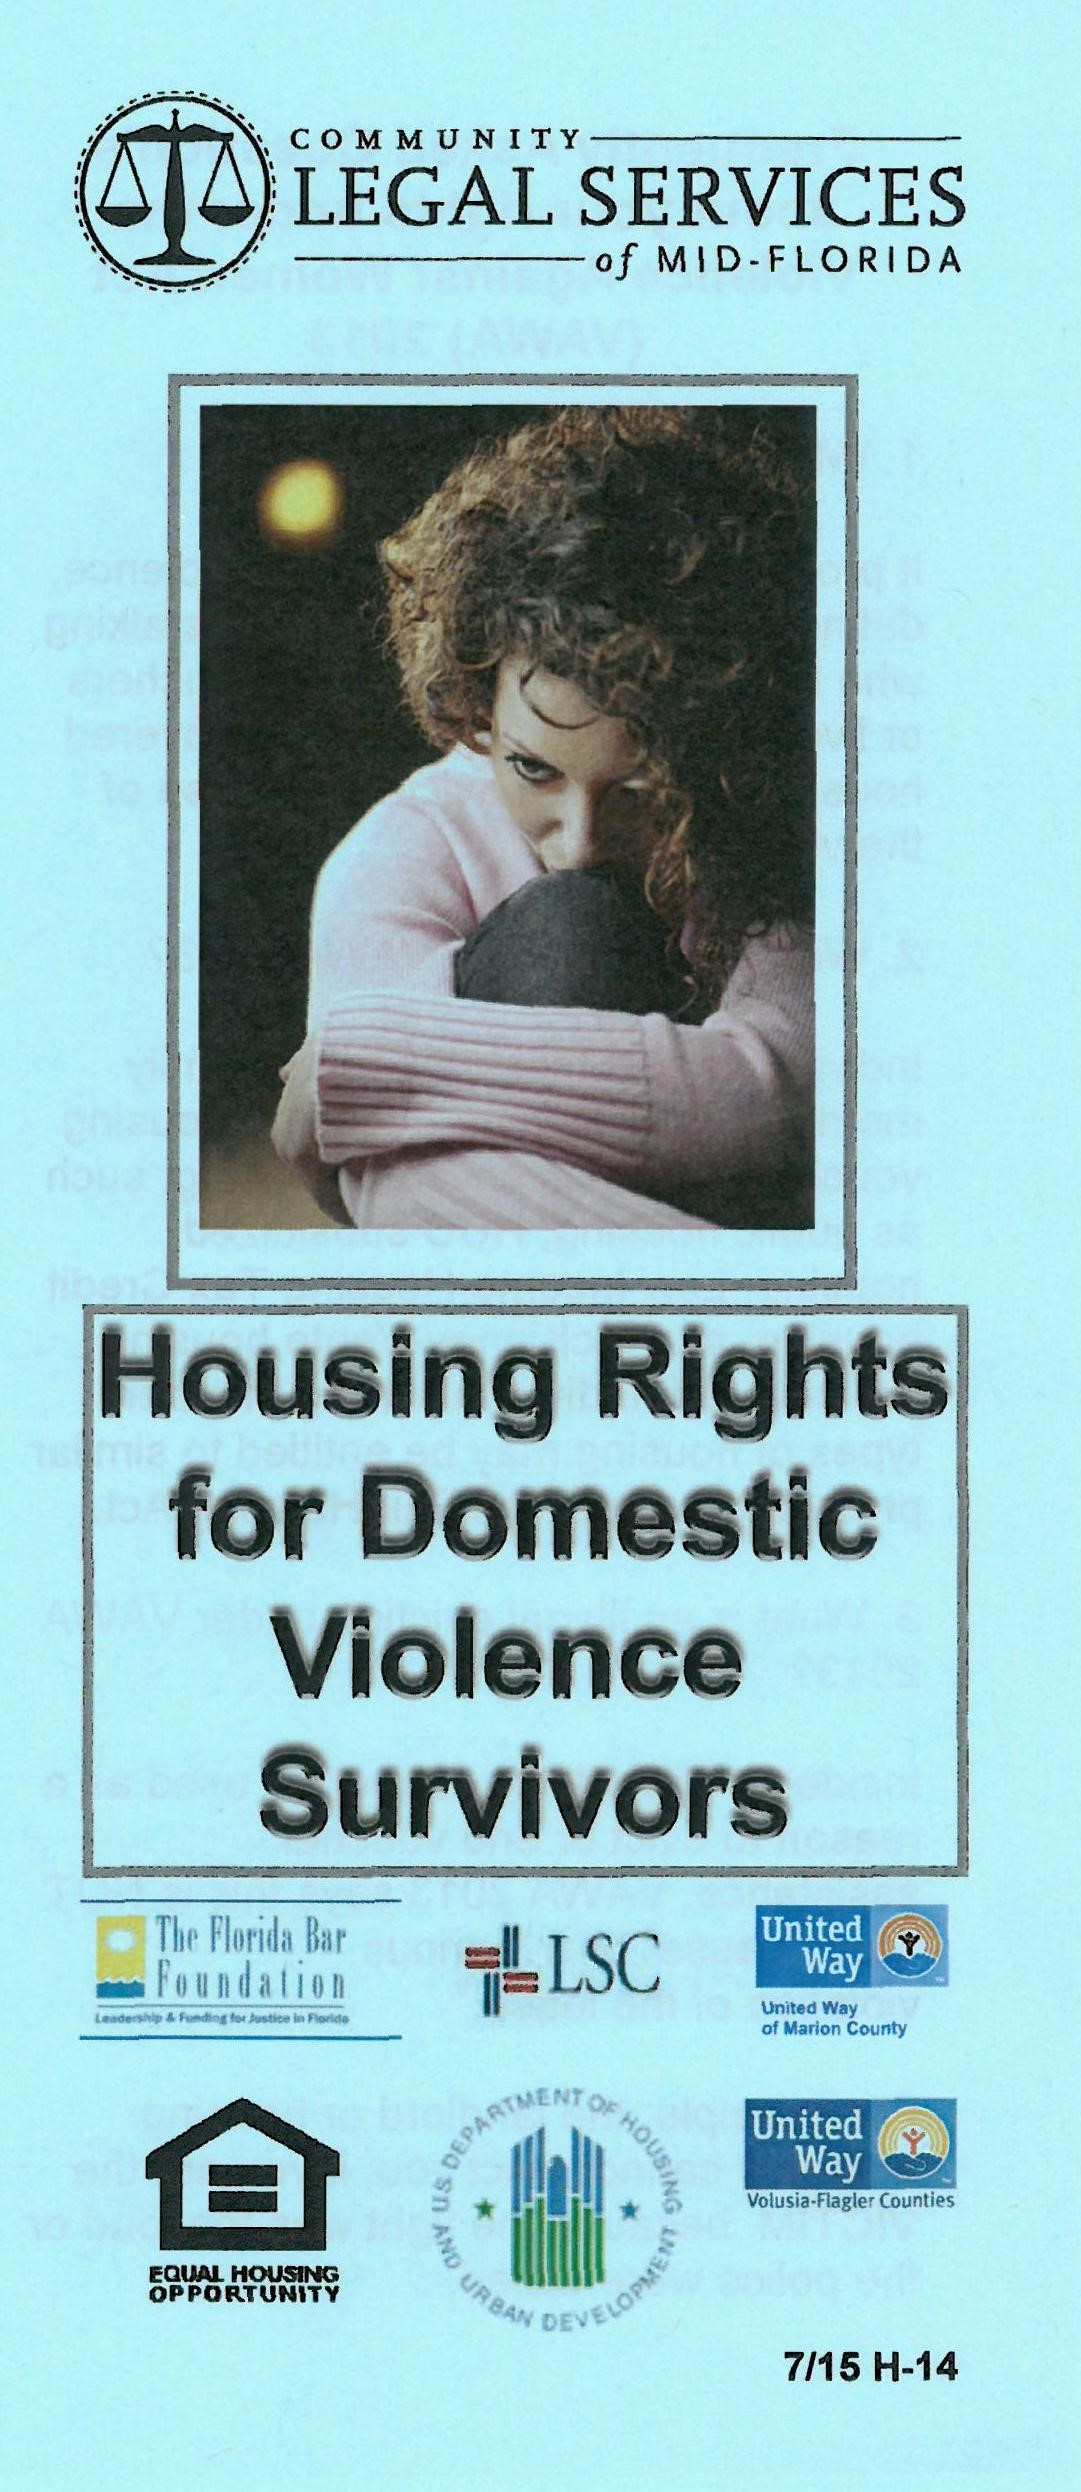 Housing Rights for Domestic Violence Survivors